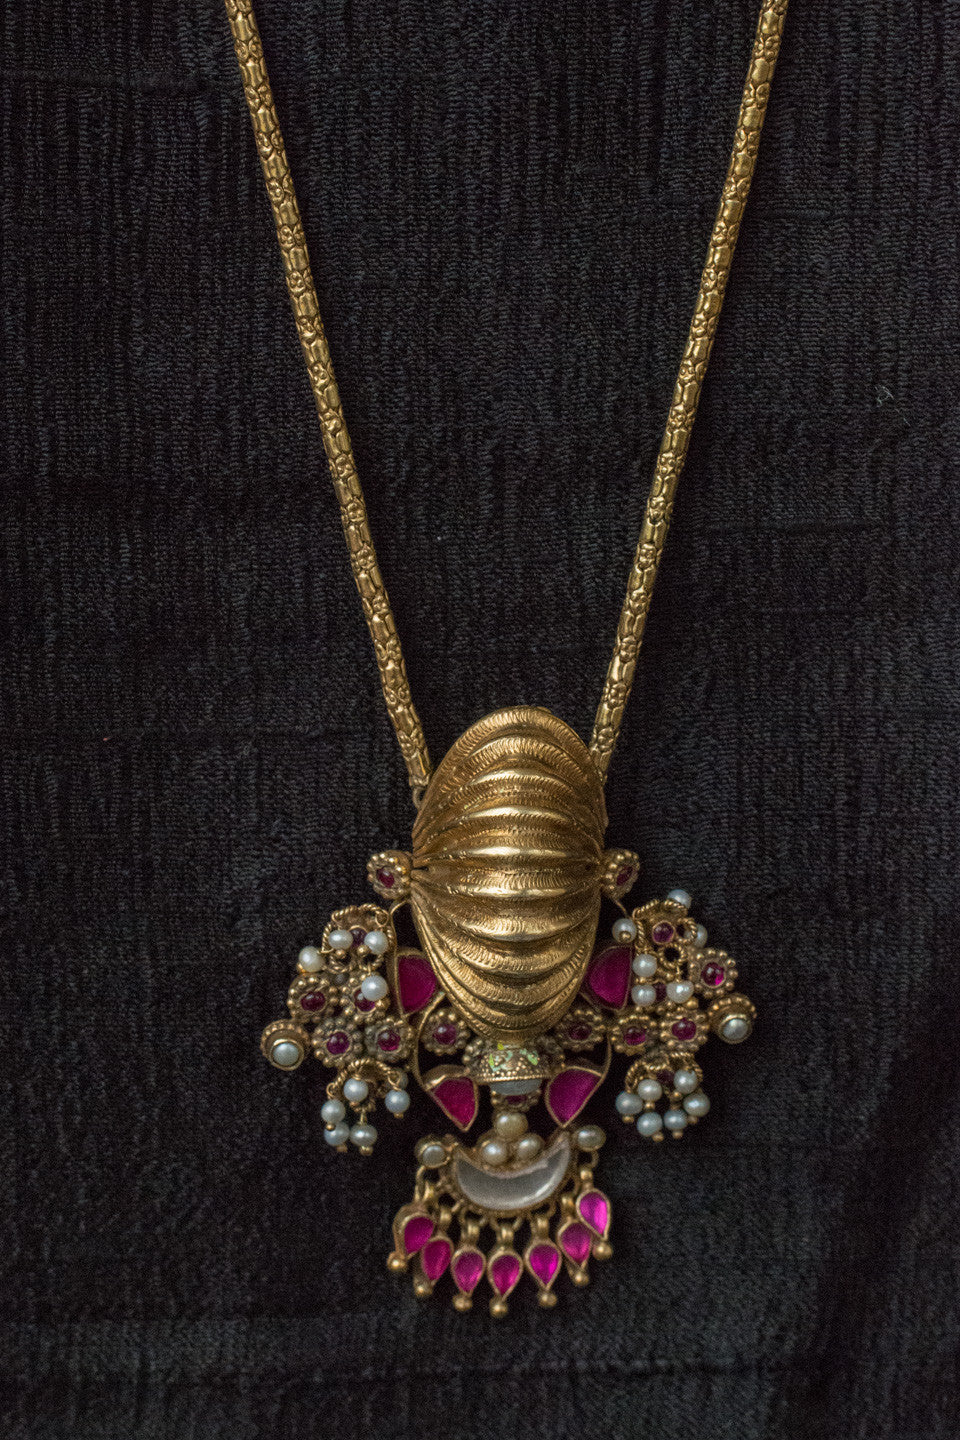 20a522-silver-gold-plated-amrapali-necklace-raised-design-pink-white-pearl-accents